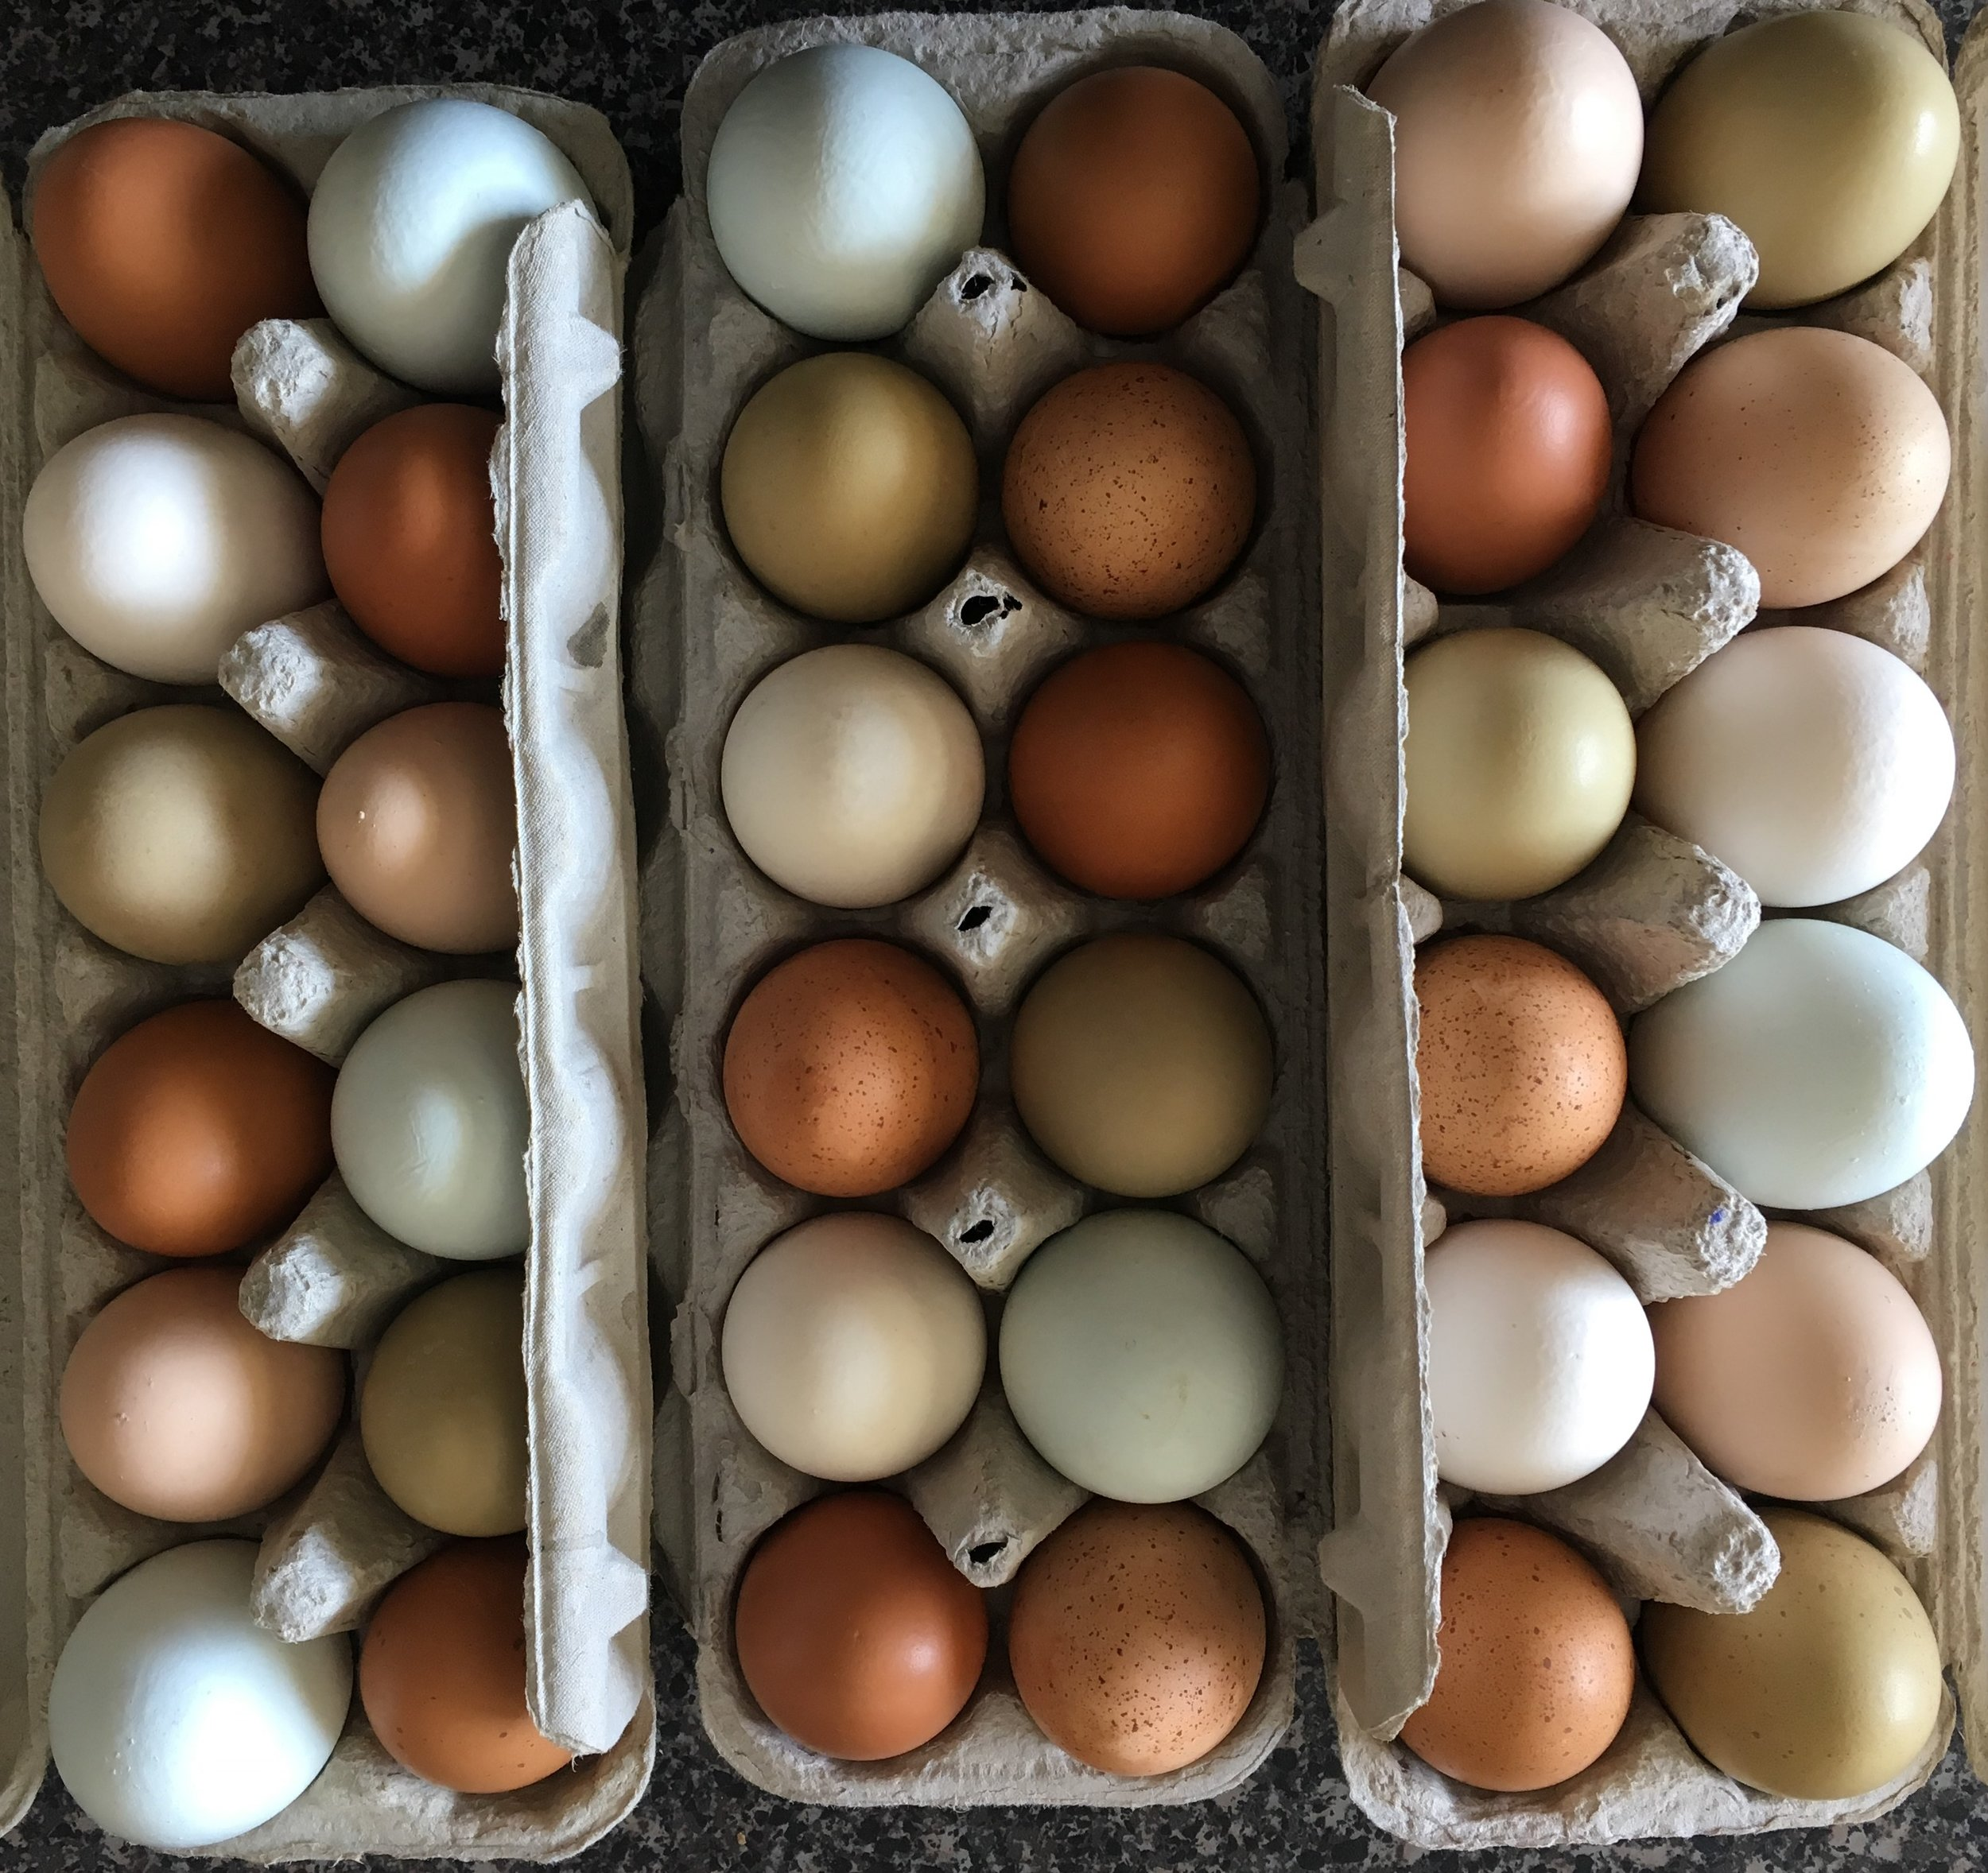 That the lovely eggs produced by such hens are healthier and more delicious than the caged variety. -